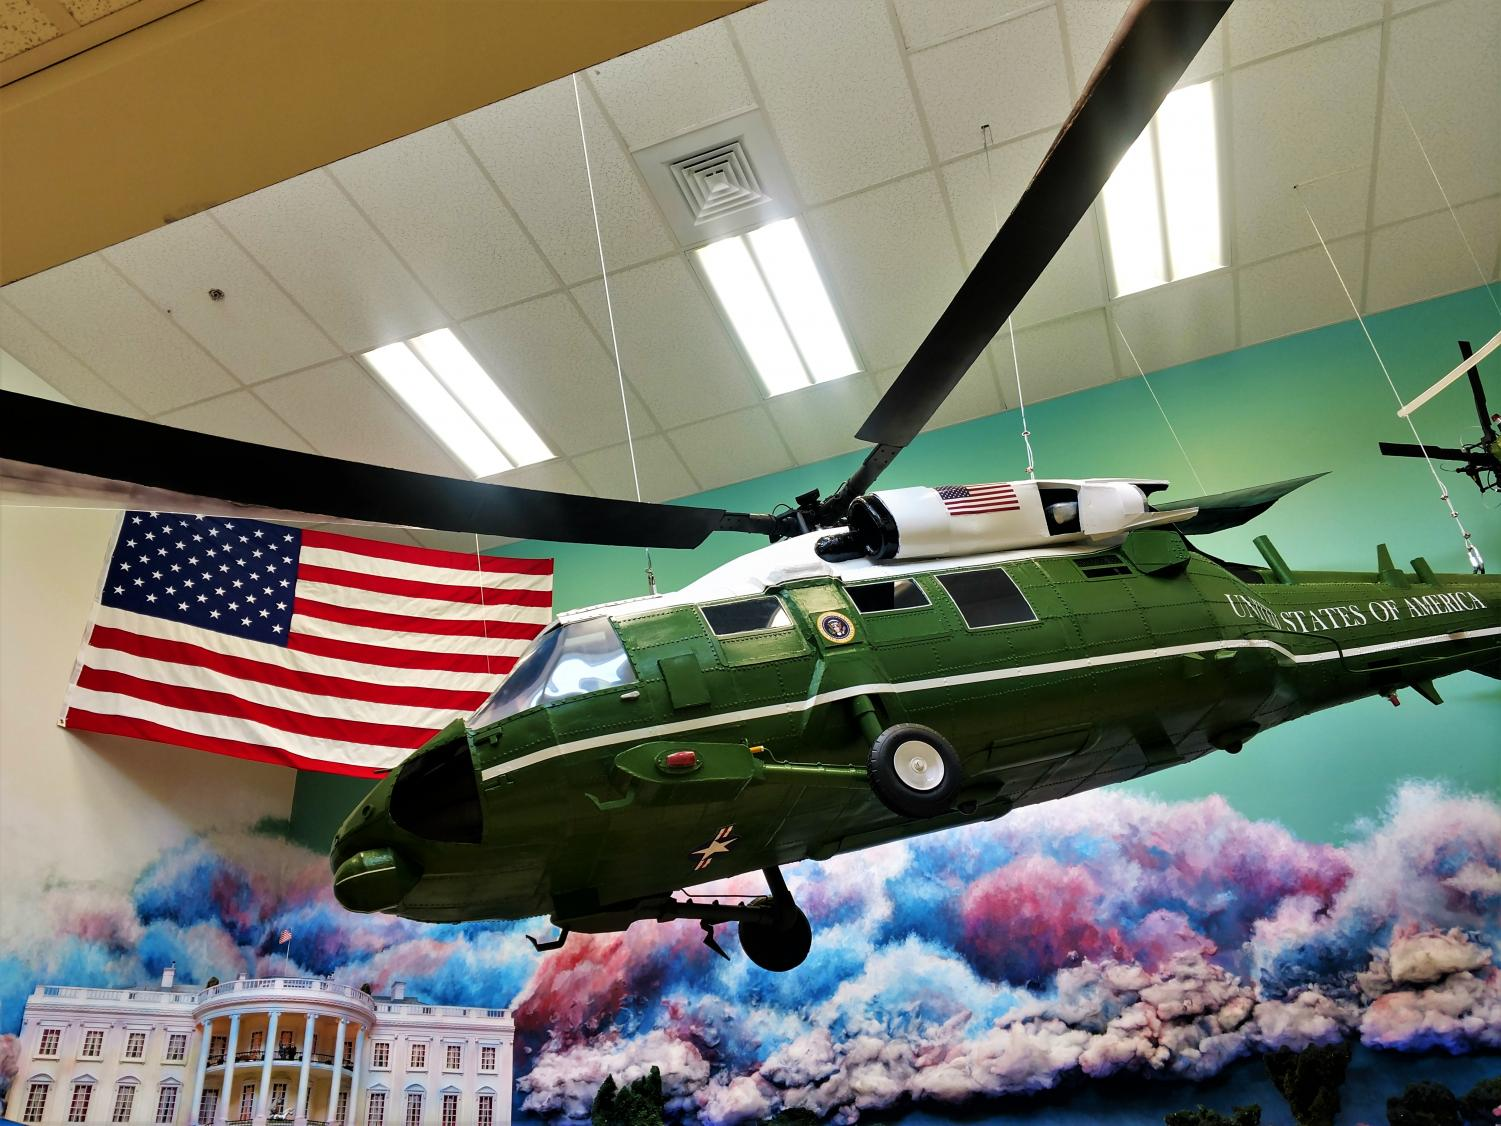 The newly added Blackhawk along with the White House and the colorful trees. Can you find the Three baby Easter eggs in the photo? (Hint: look at the White House)